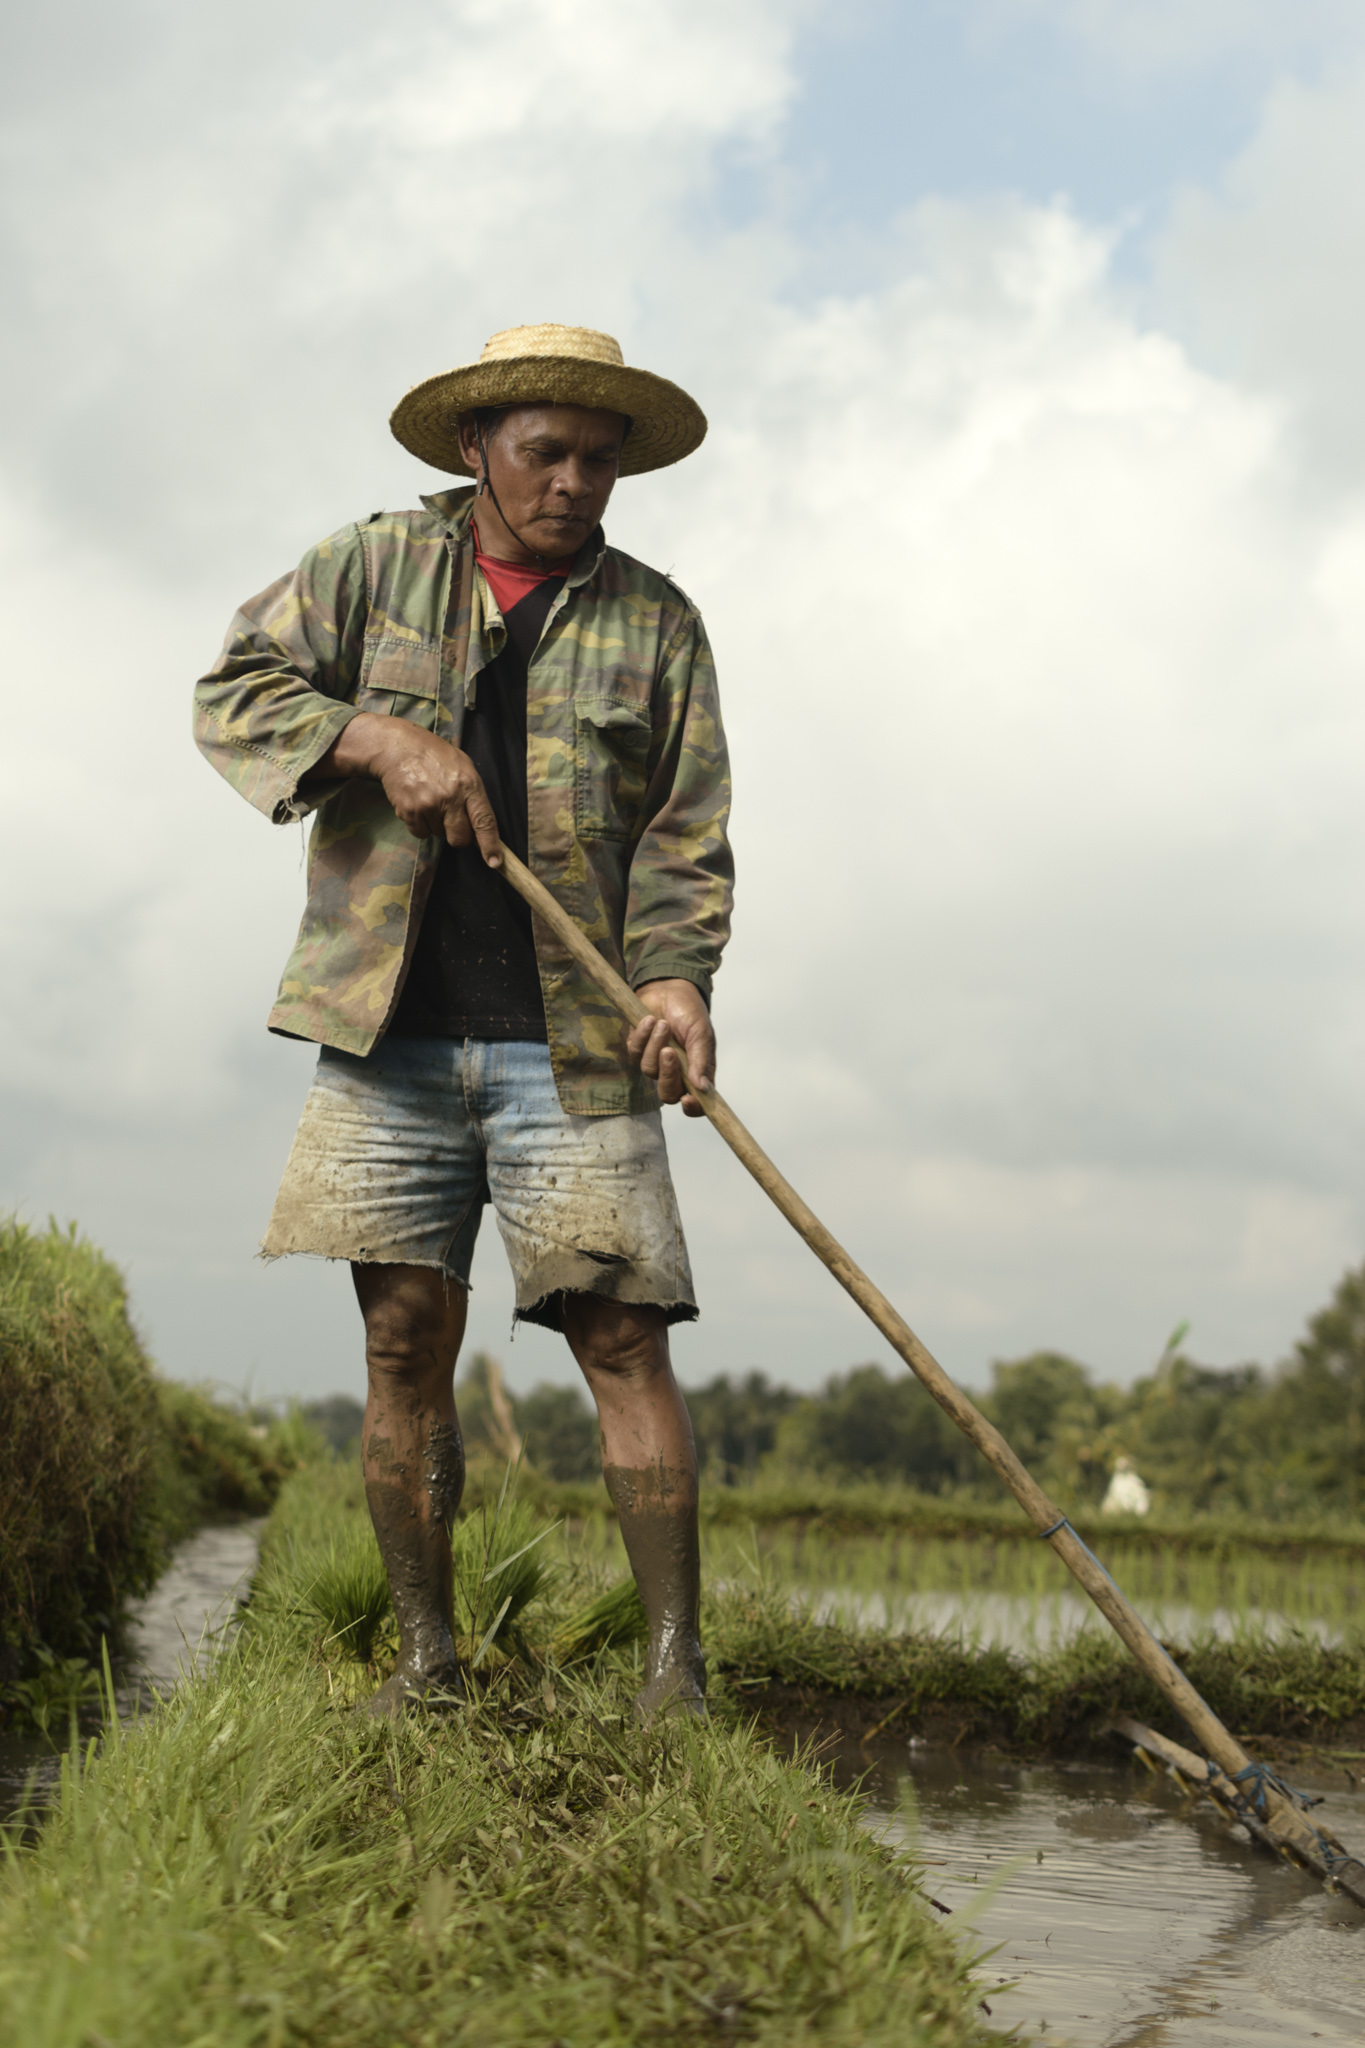 A rice farmer rakes a section of the rice fields of Bali.